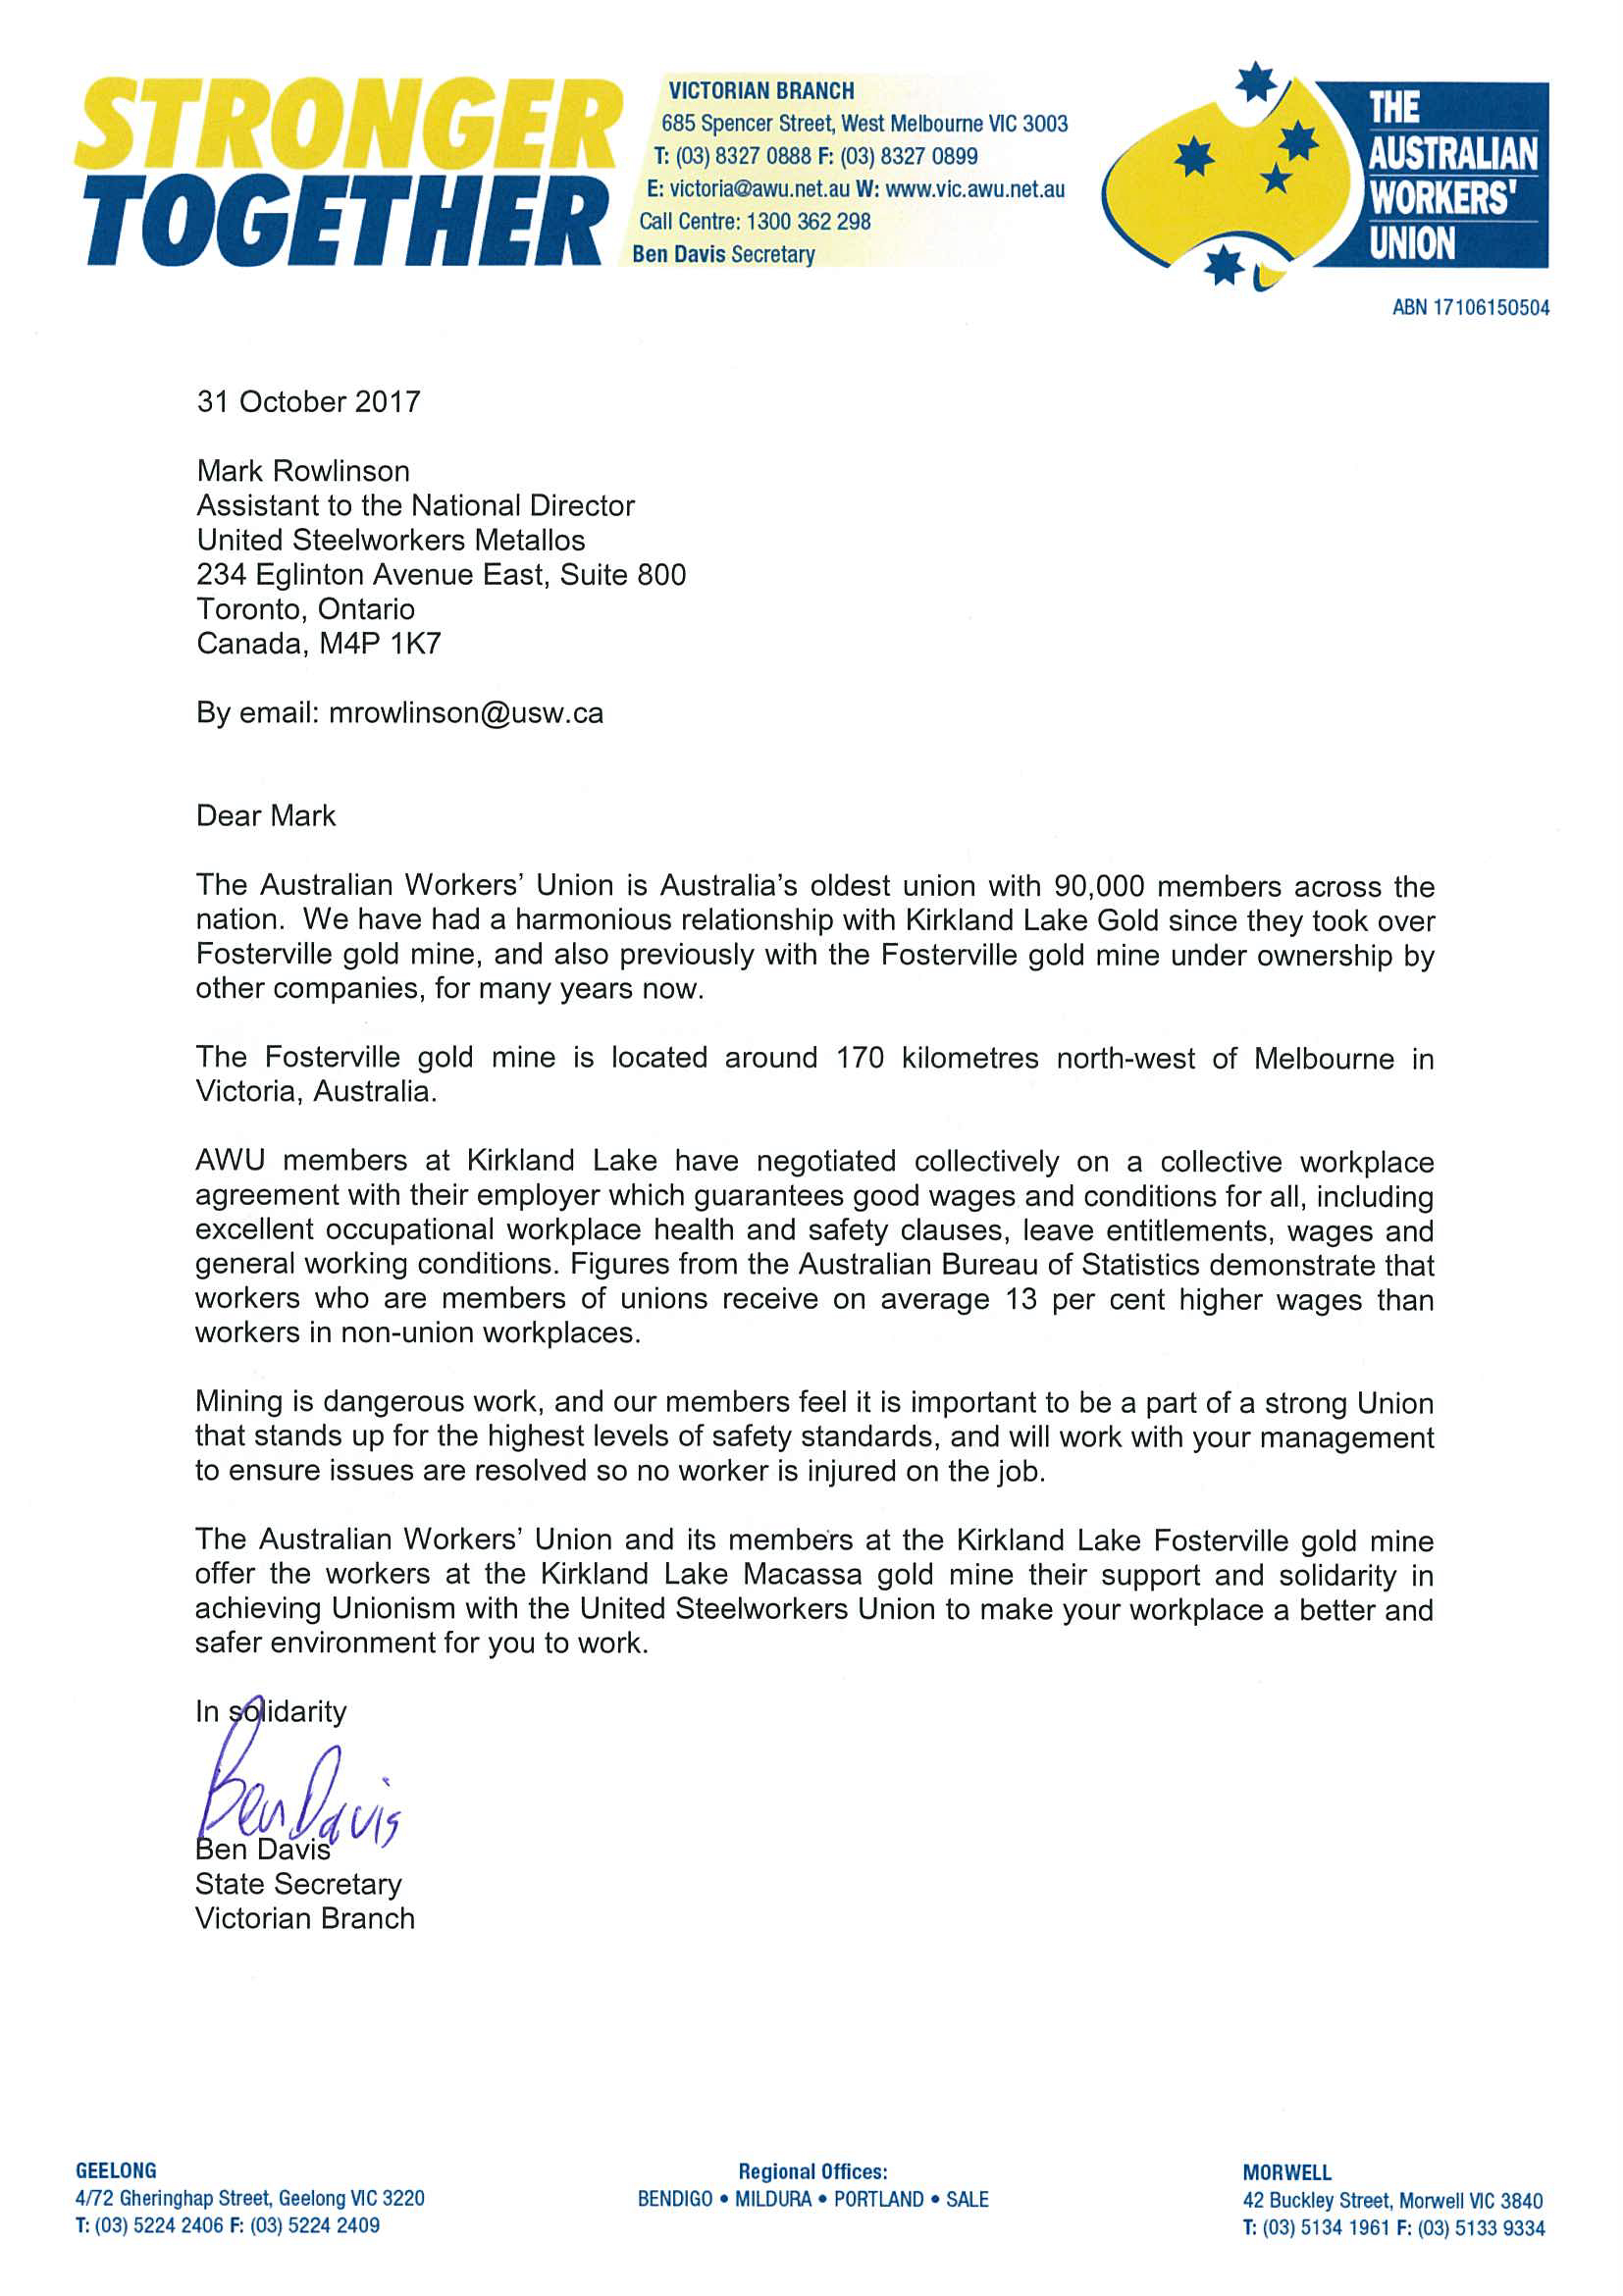 Letter-of-support-and-solidarity-from-AWU-to-United-Steelworkers-re-Kirkland-Lake.jpg